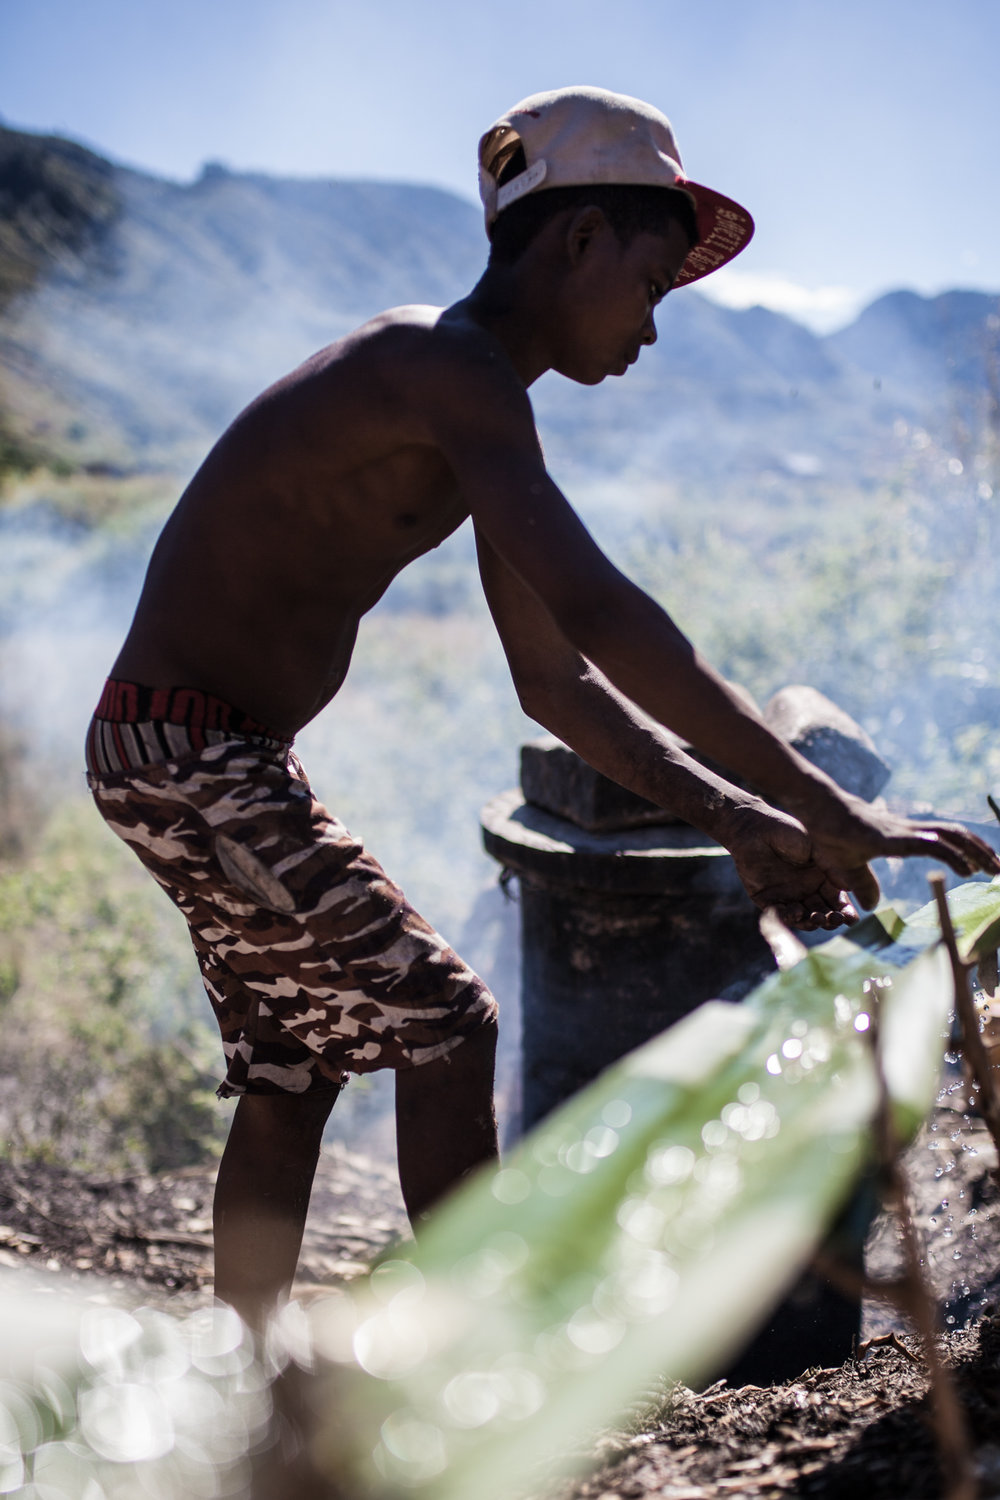 Toaka Gasy Is Distilled in Oil Drums from a Fermented Sugarcane Mix